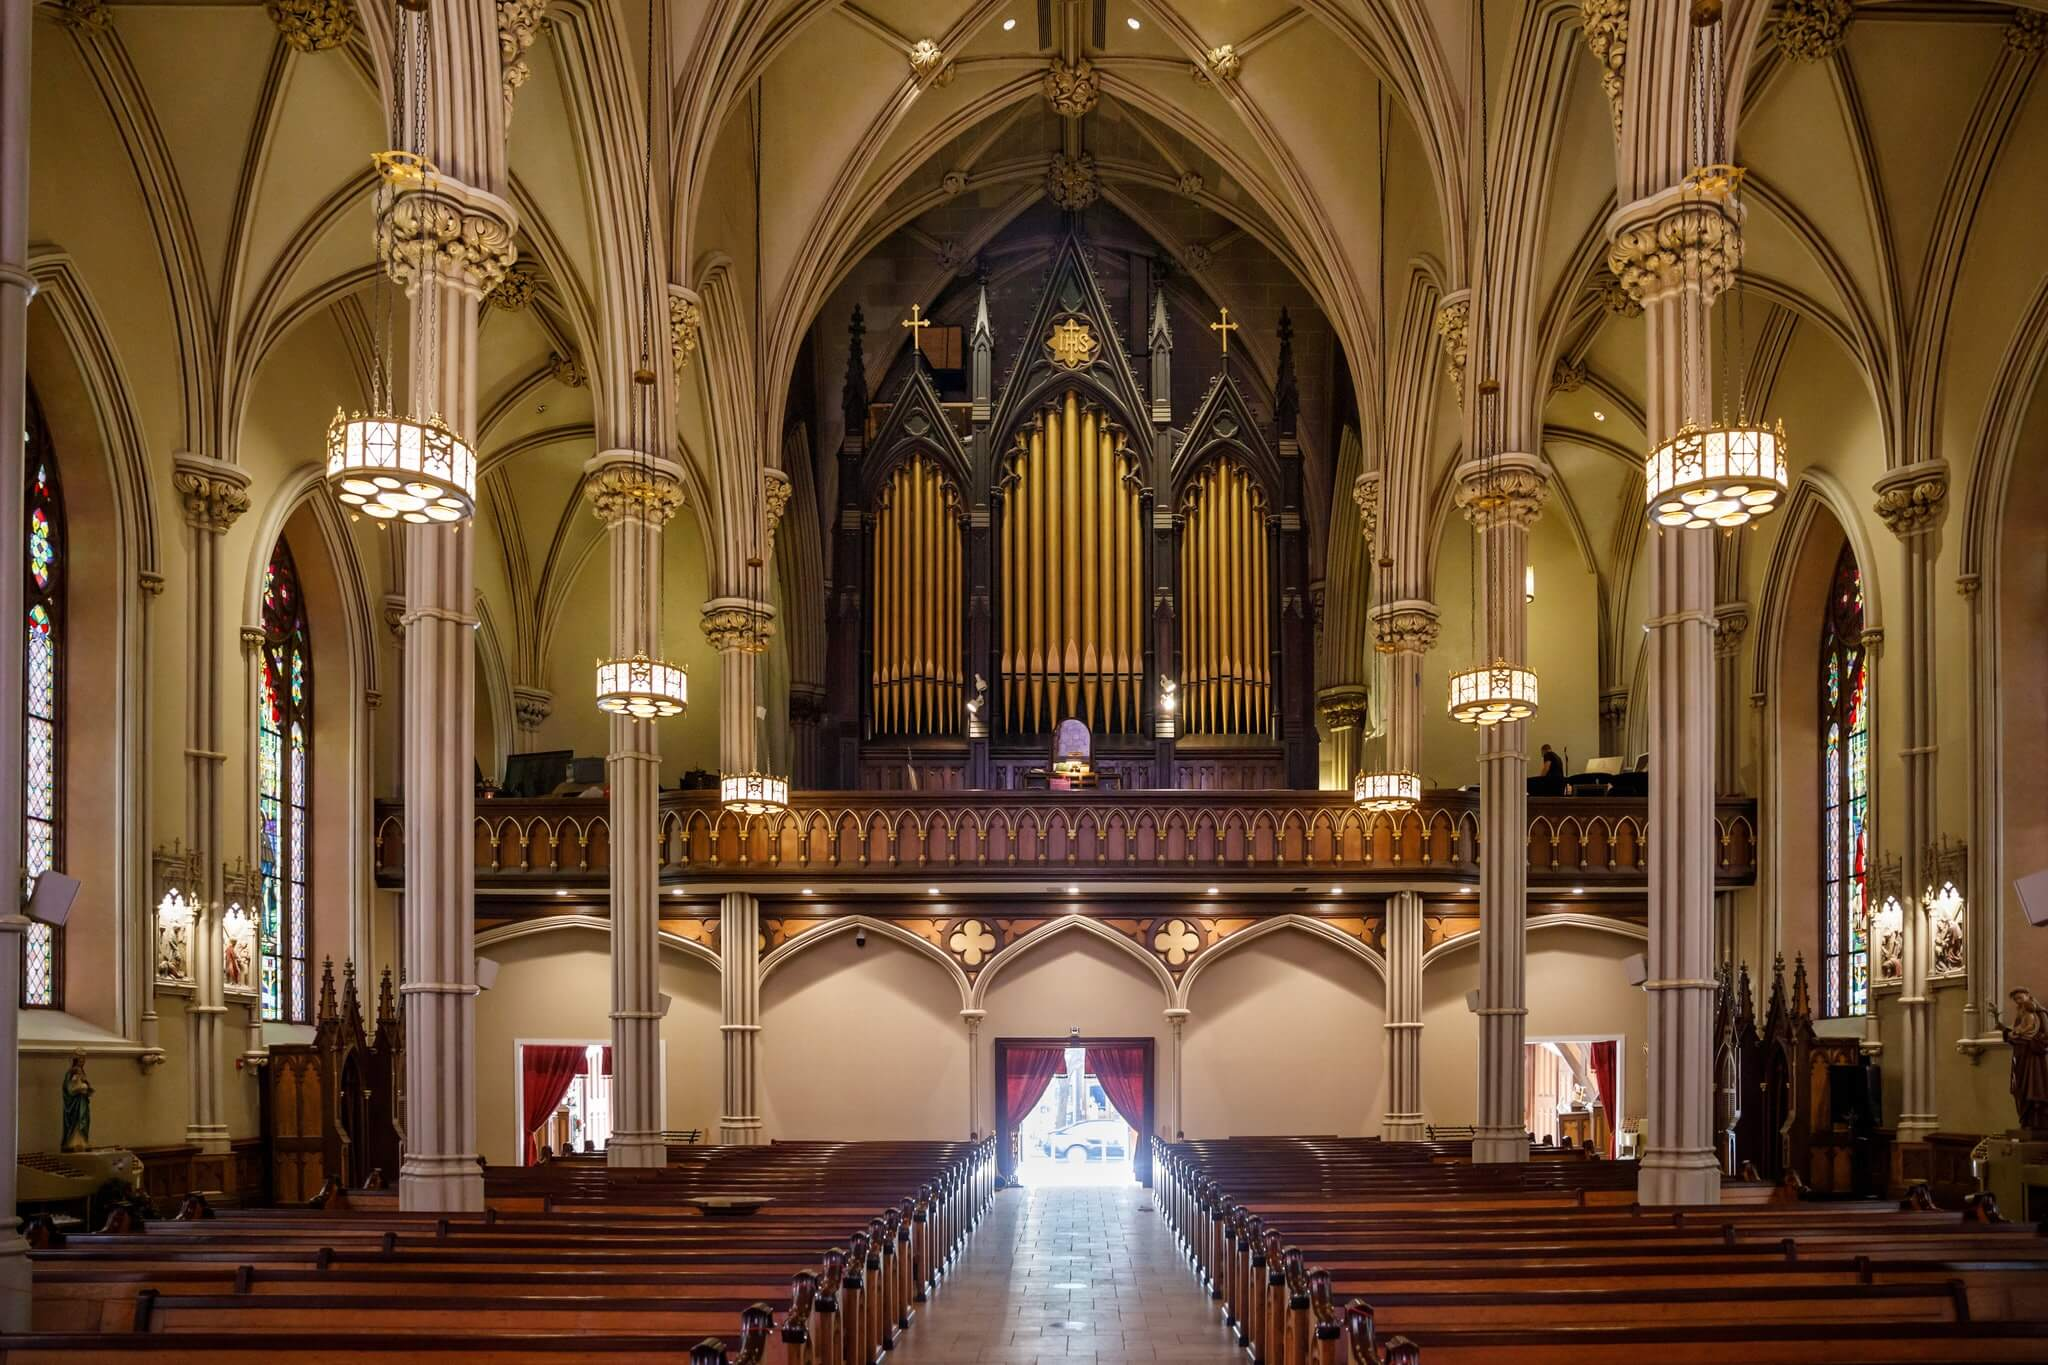 1868 Henry Erben pipe organ. Photo by Stefano Ukmar for The New York Times